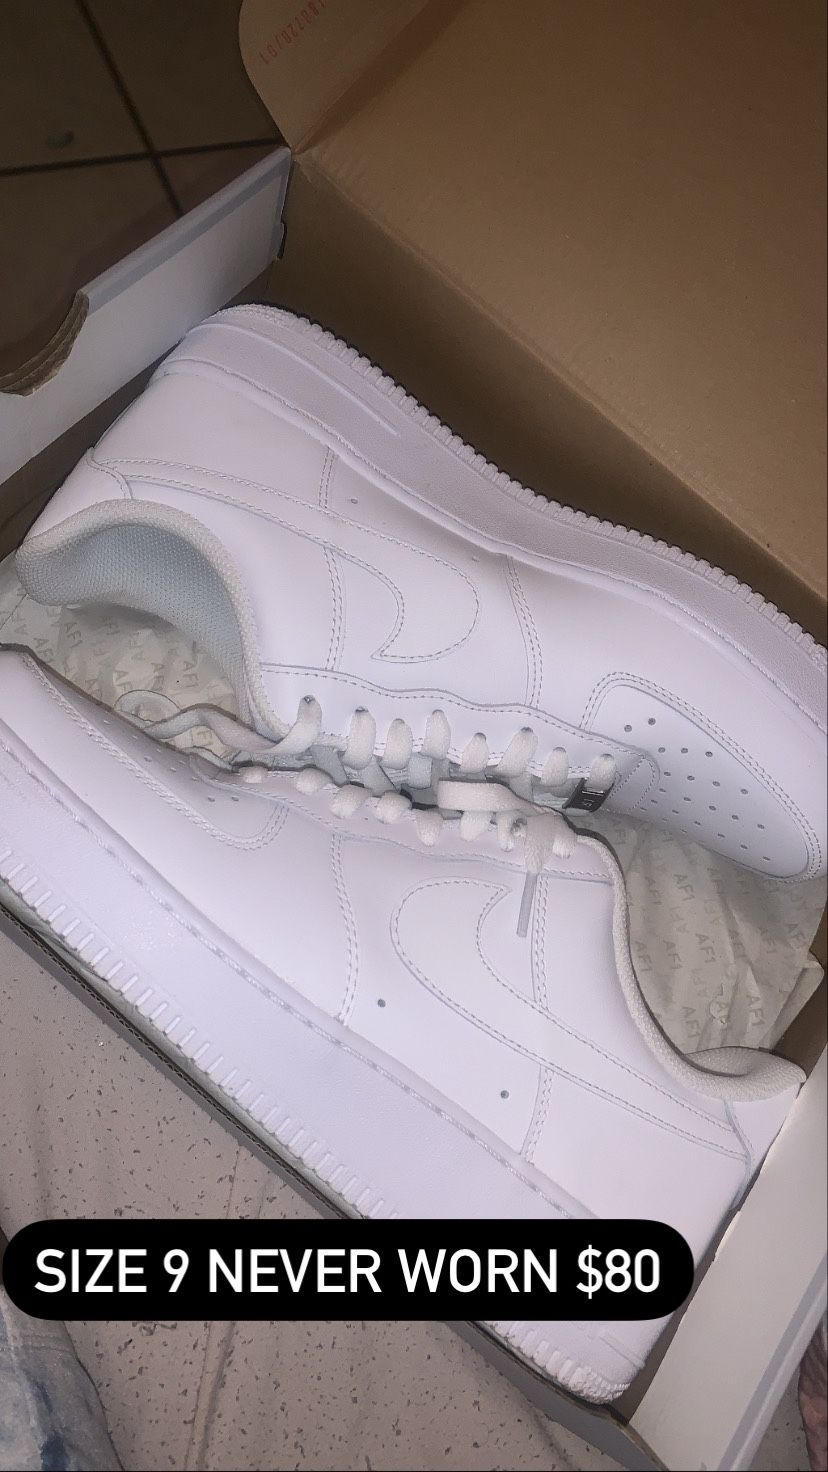 2 Pair Of Nike's Size 9.5